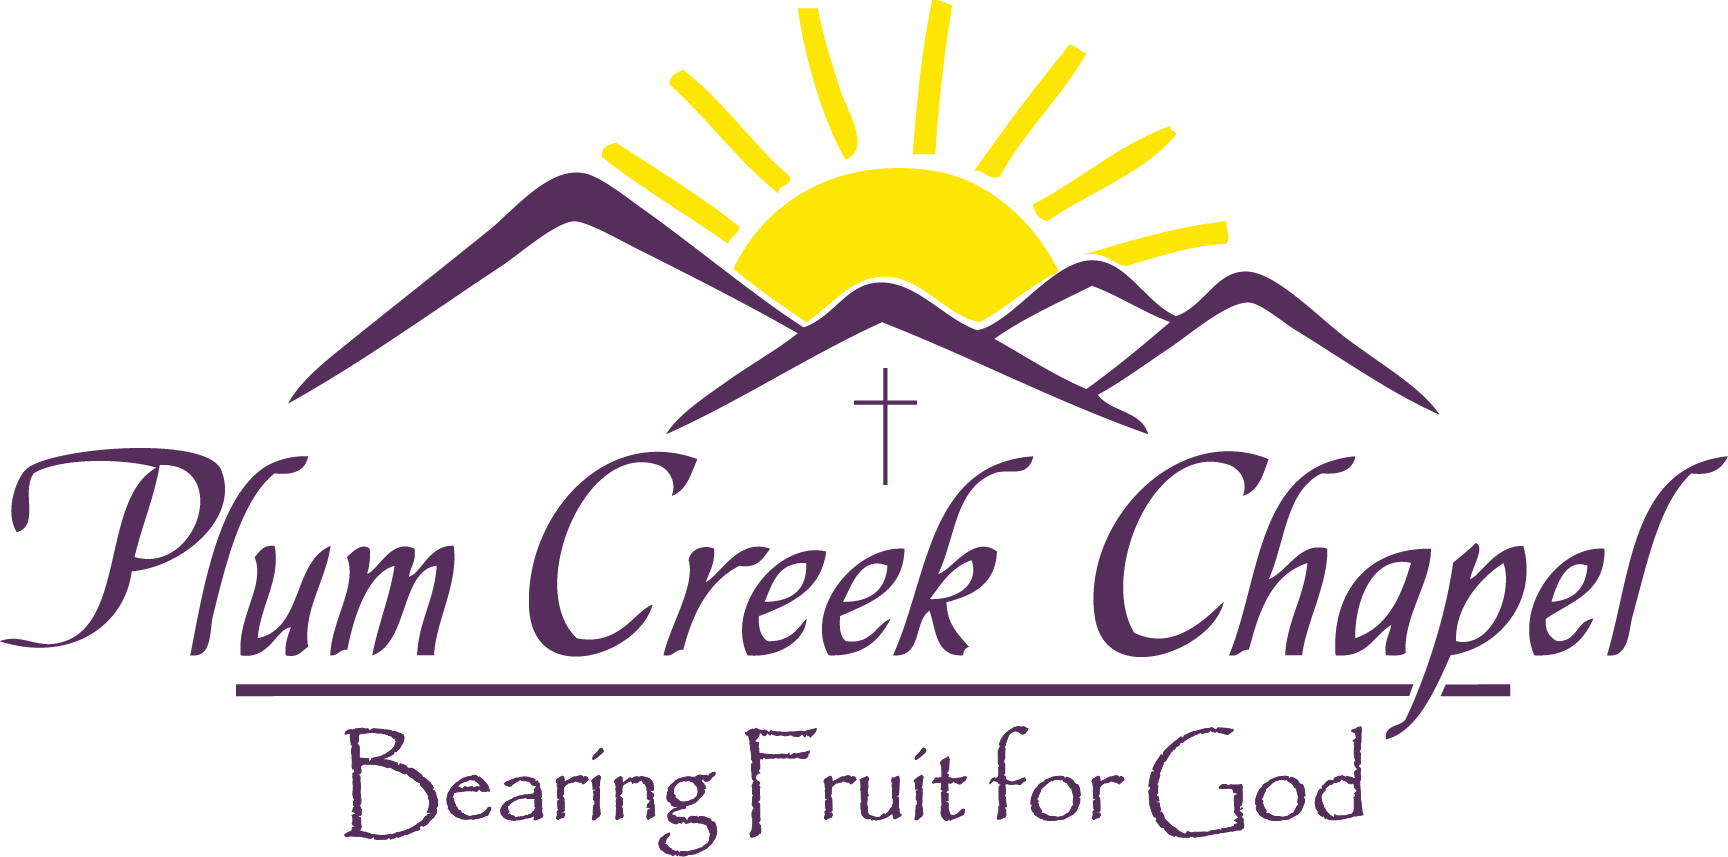 Plum Creek Chapel